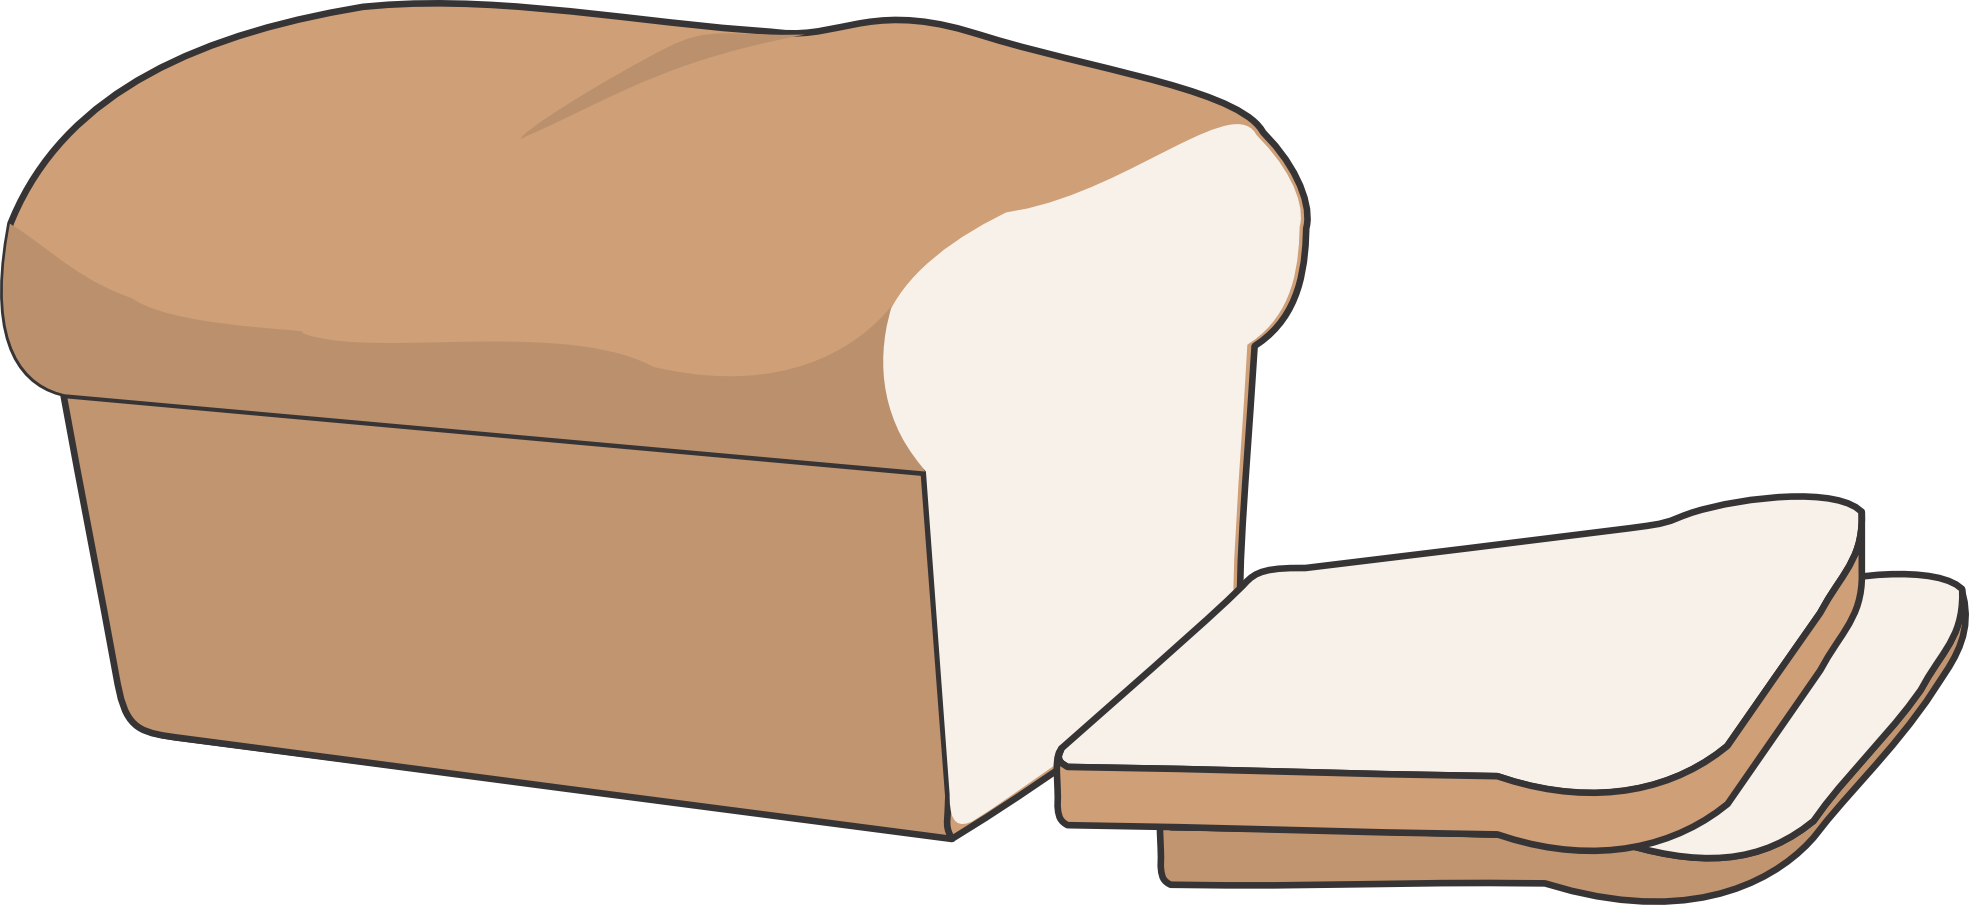 Loaf Cake Clipart : Loaf Of Bread Cartoon - ClipArt Best